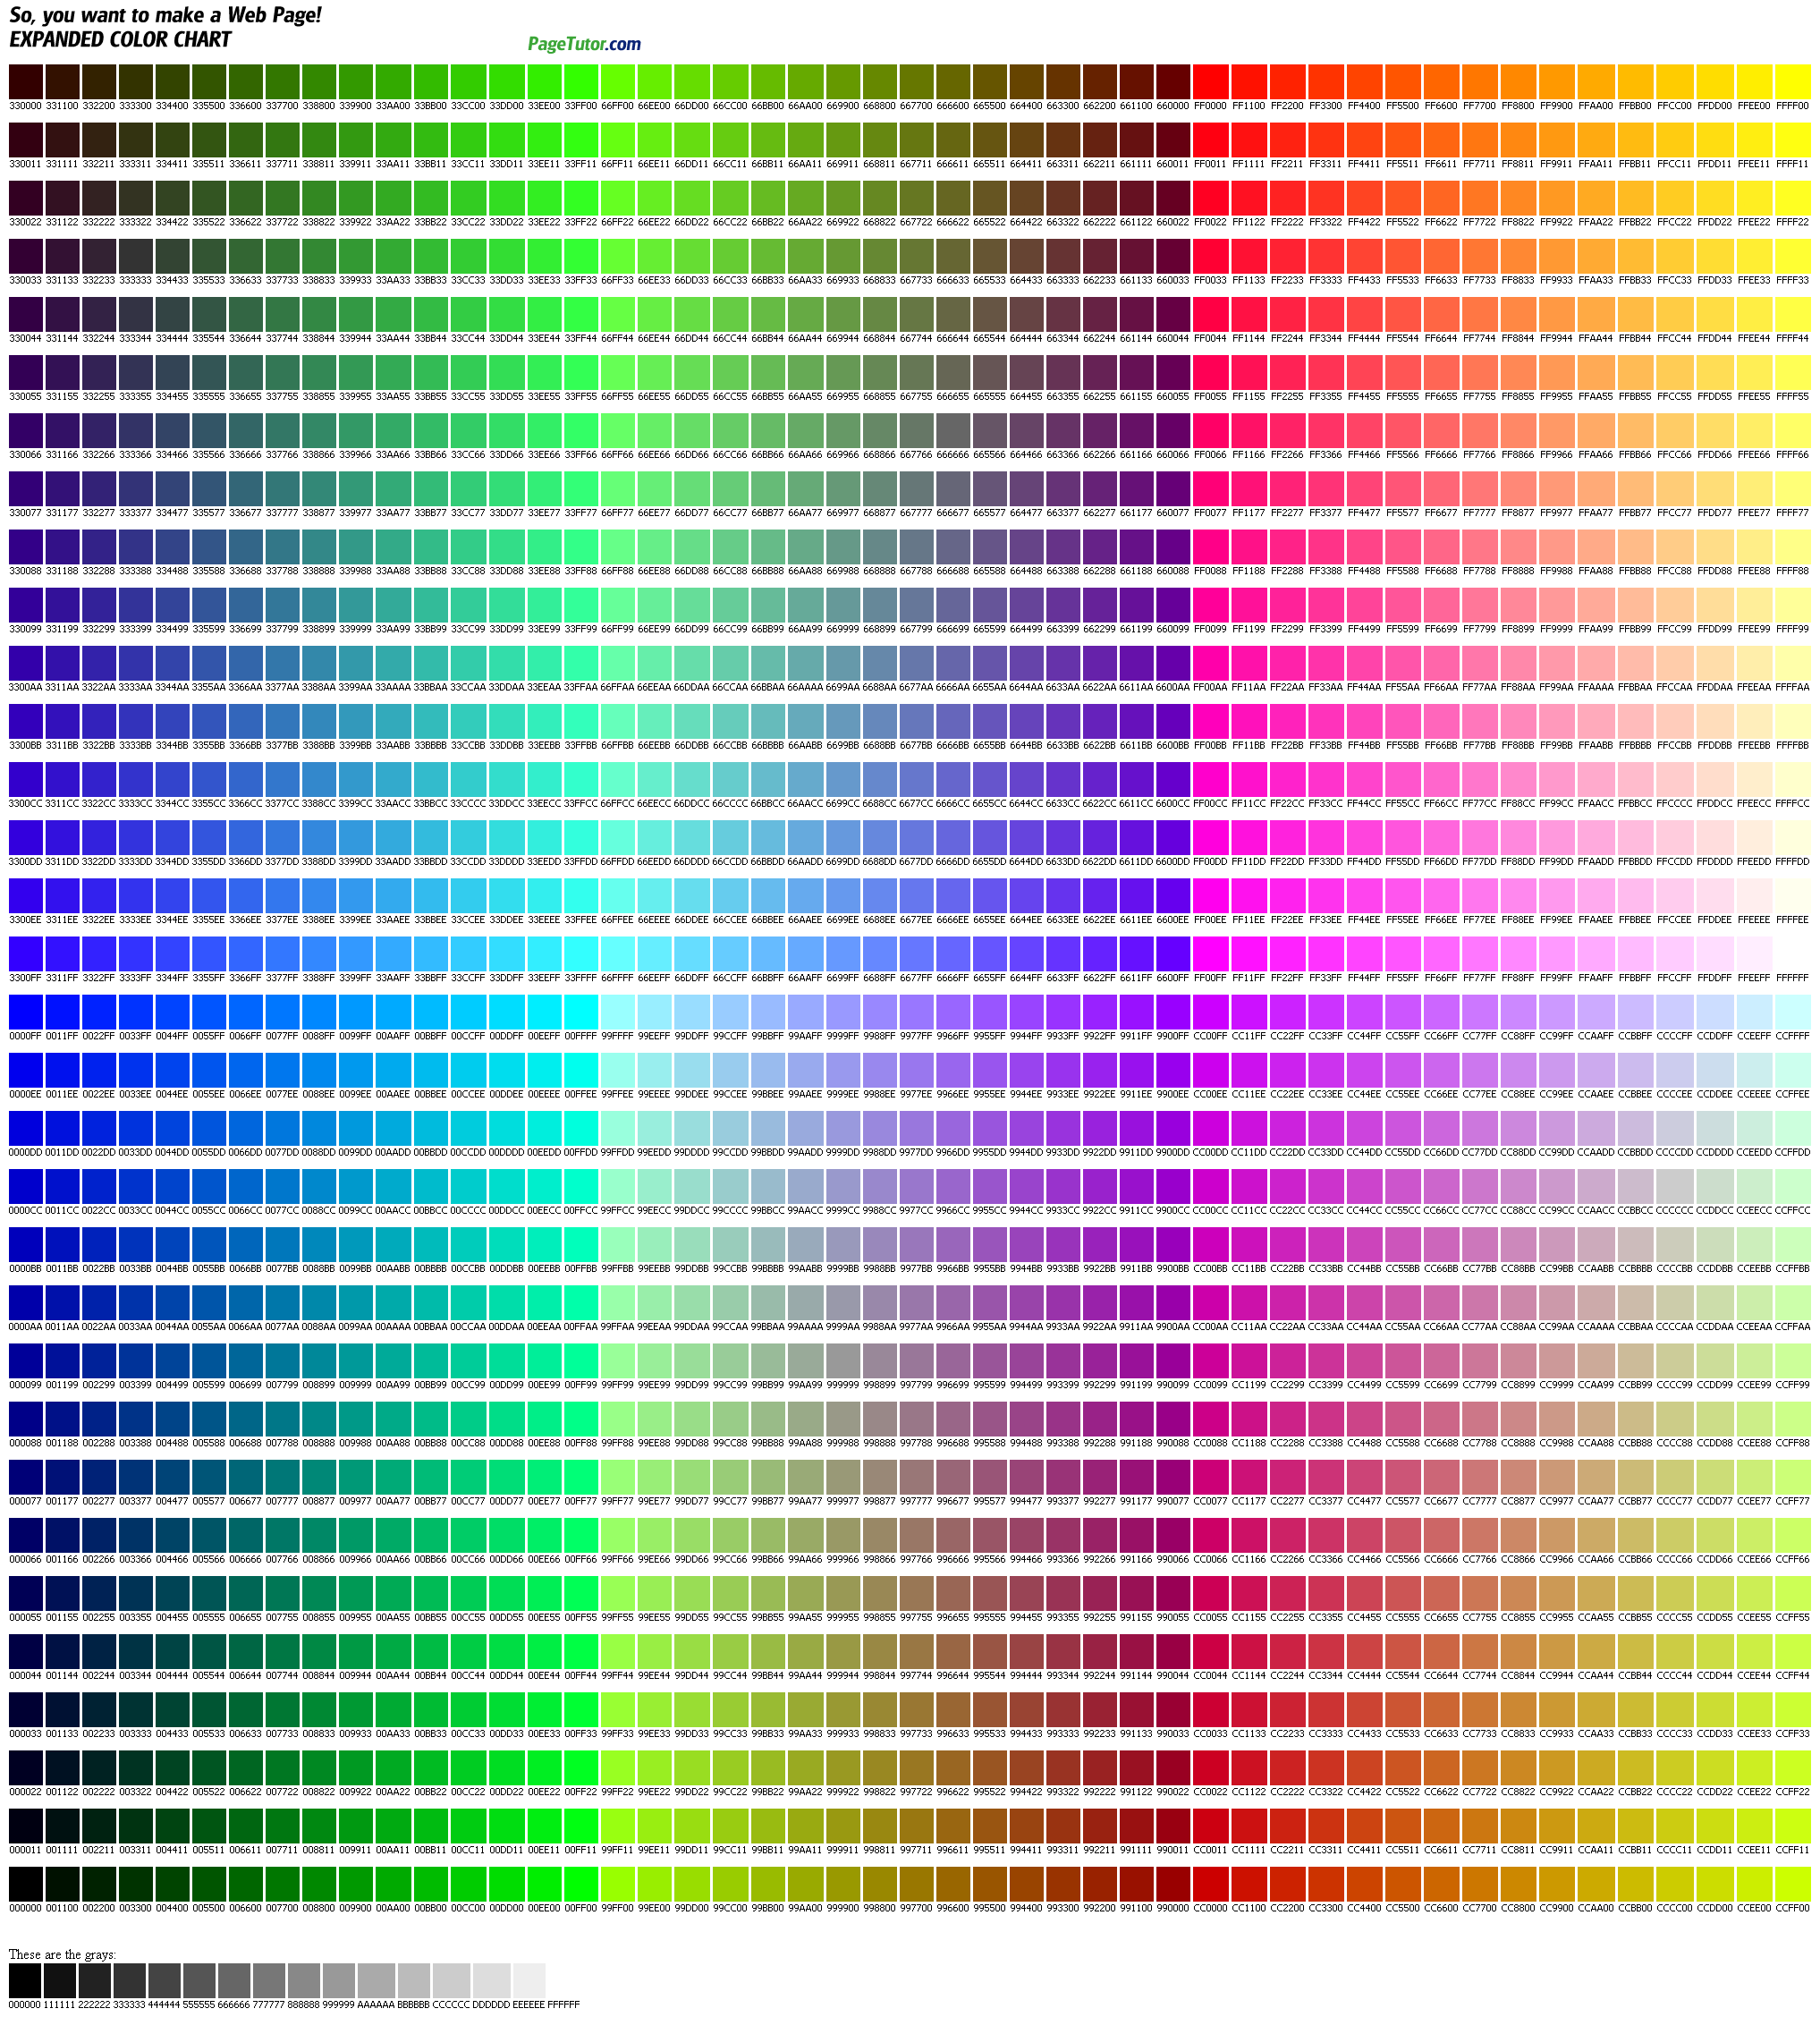 Html color chart websafe original 81 colors vaughn 39 s for Table th font color